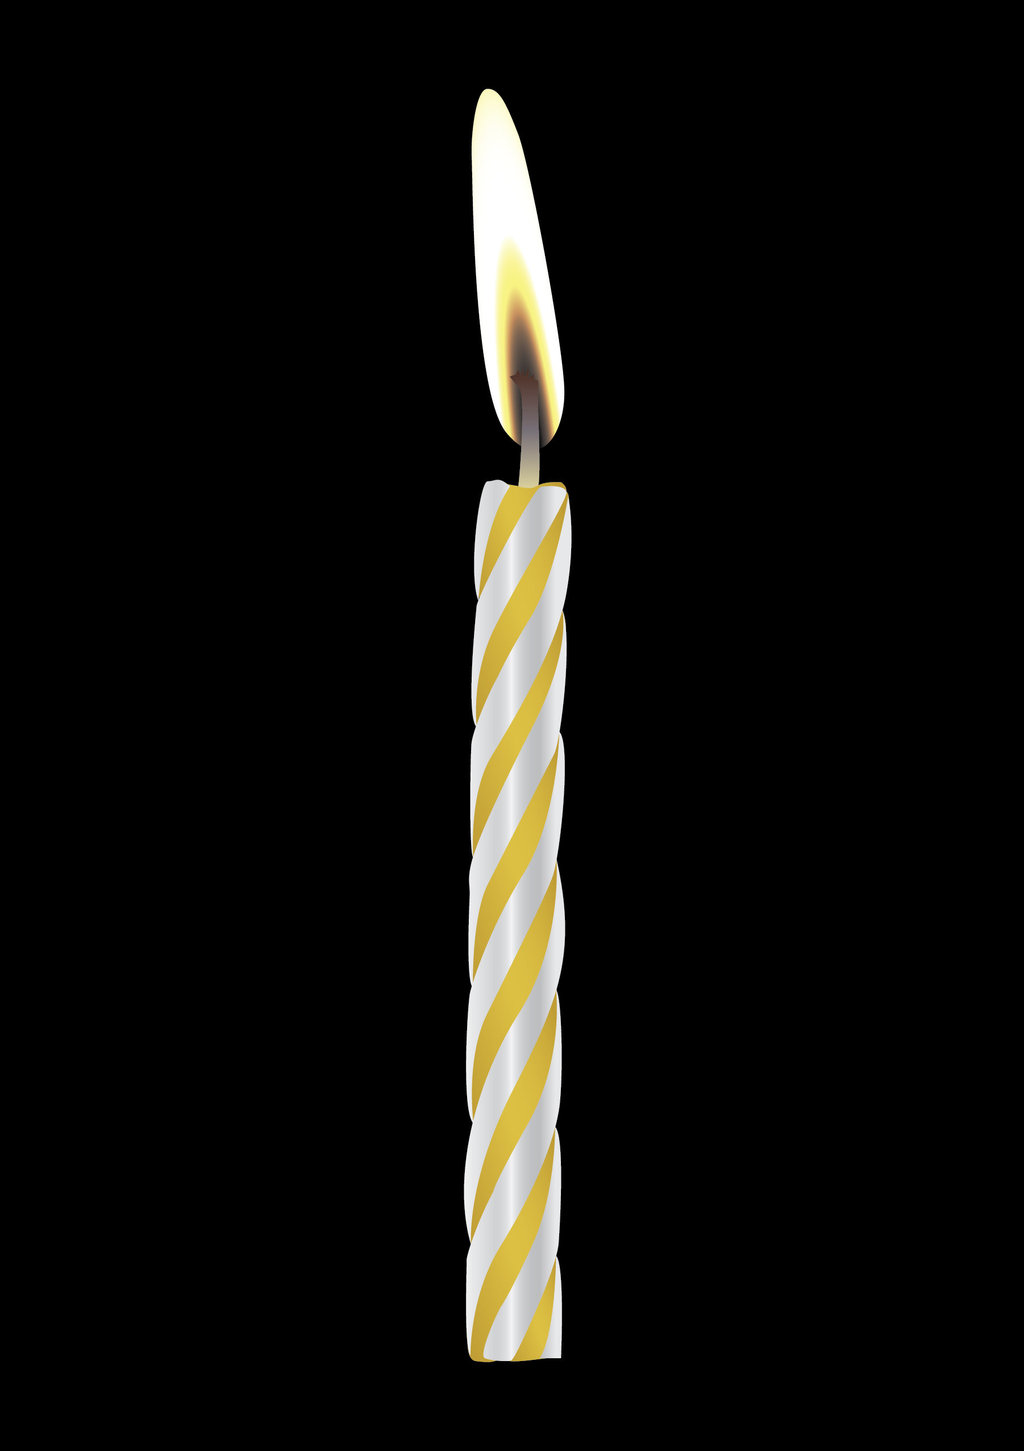 birthday candle transparent background ; birthday-candles-png-2